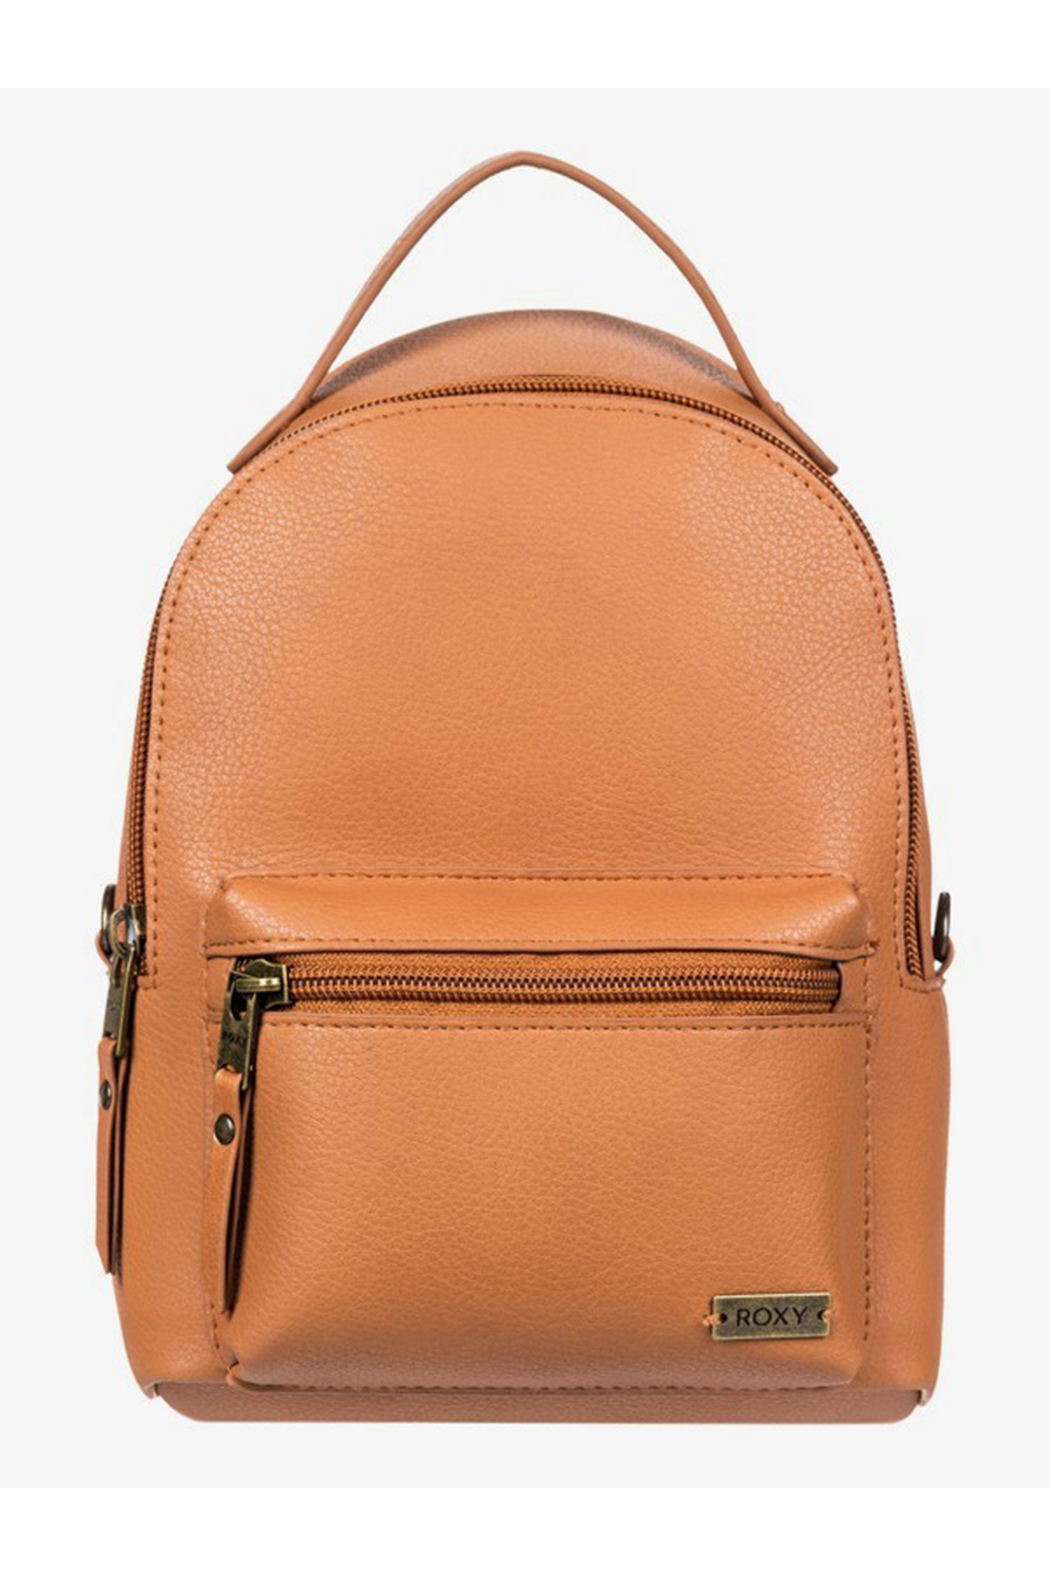 Roxy Little Fighter Extra Small Convertible Backpack/Shoulder Bag - Main Image